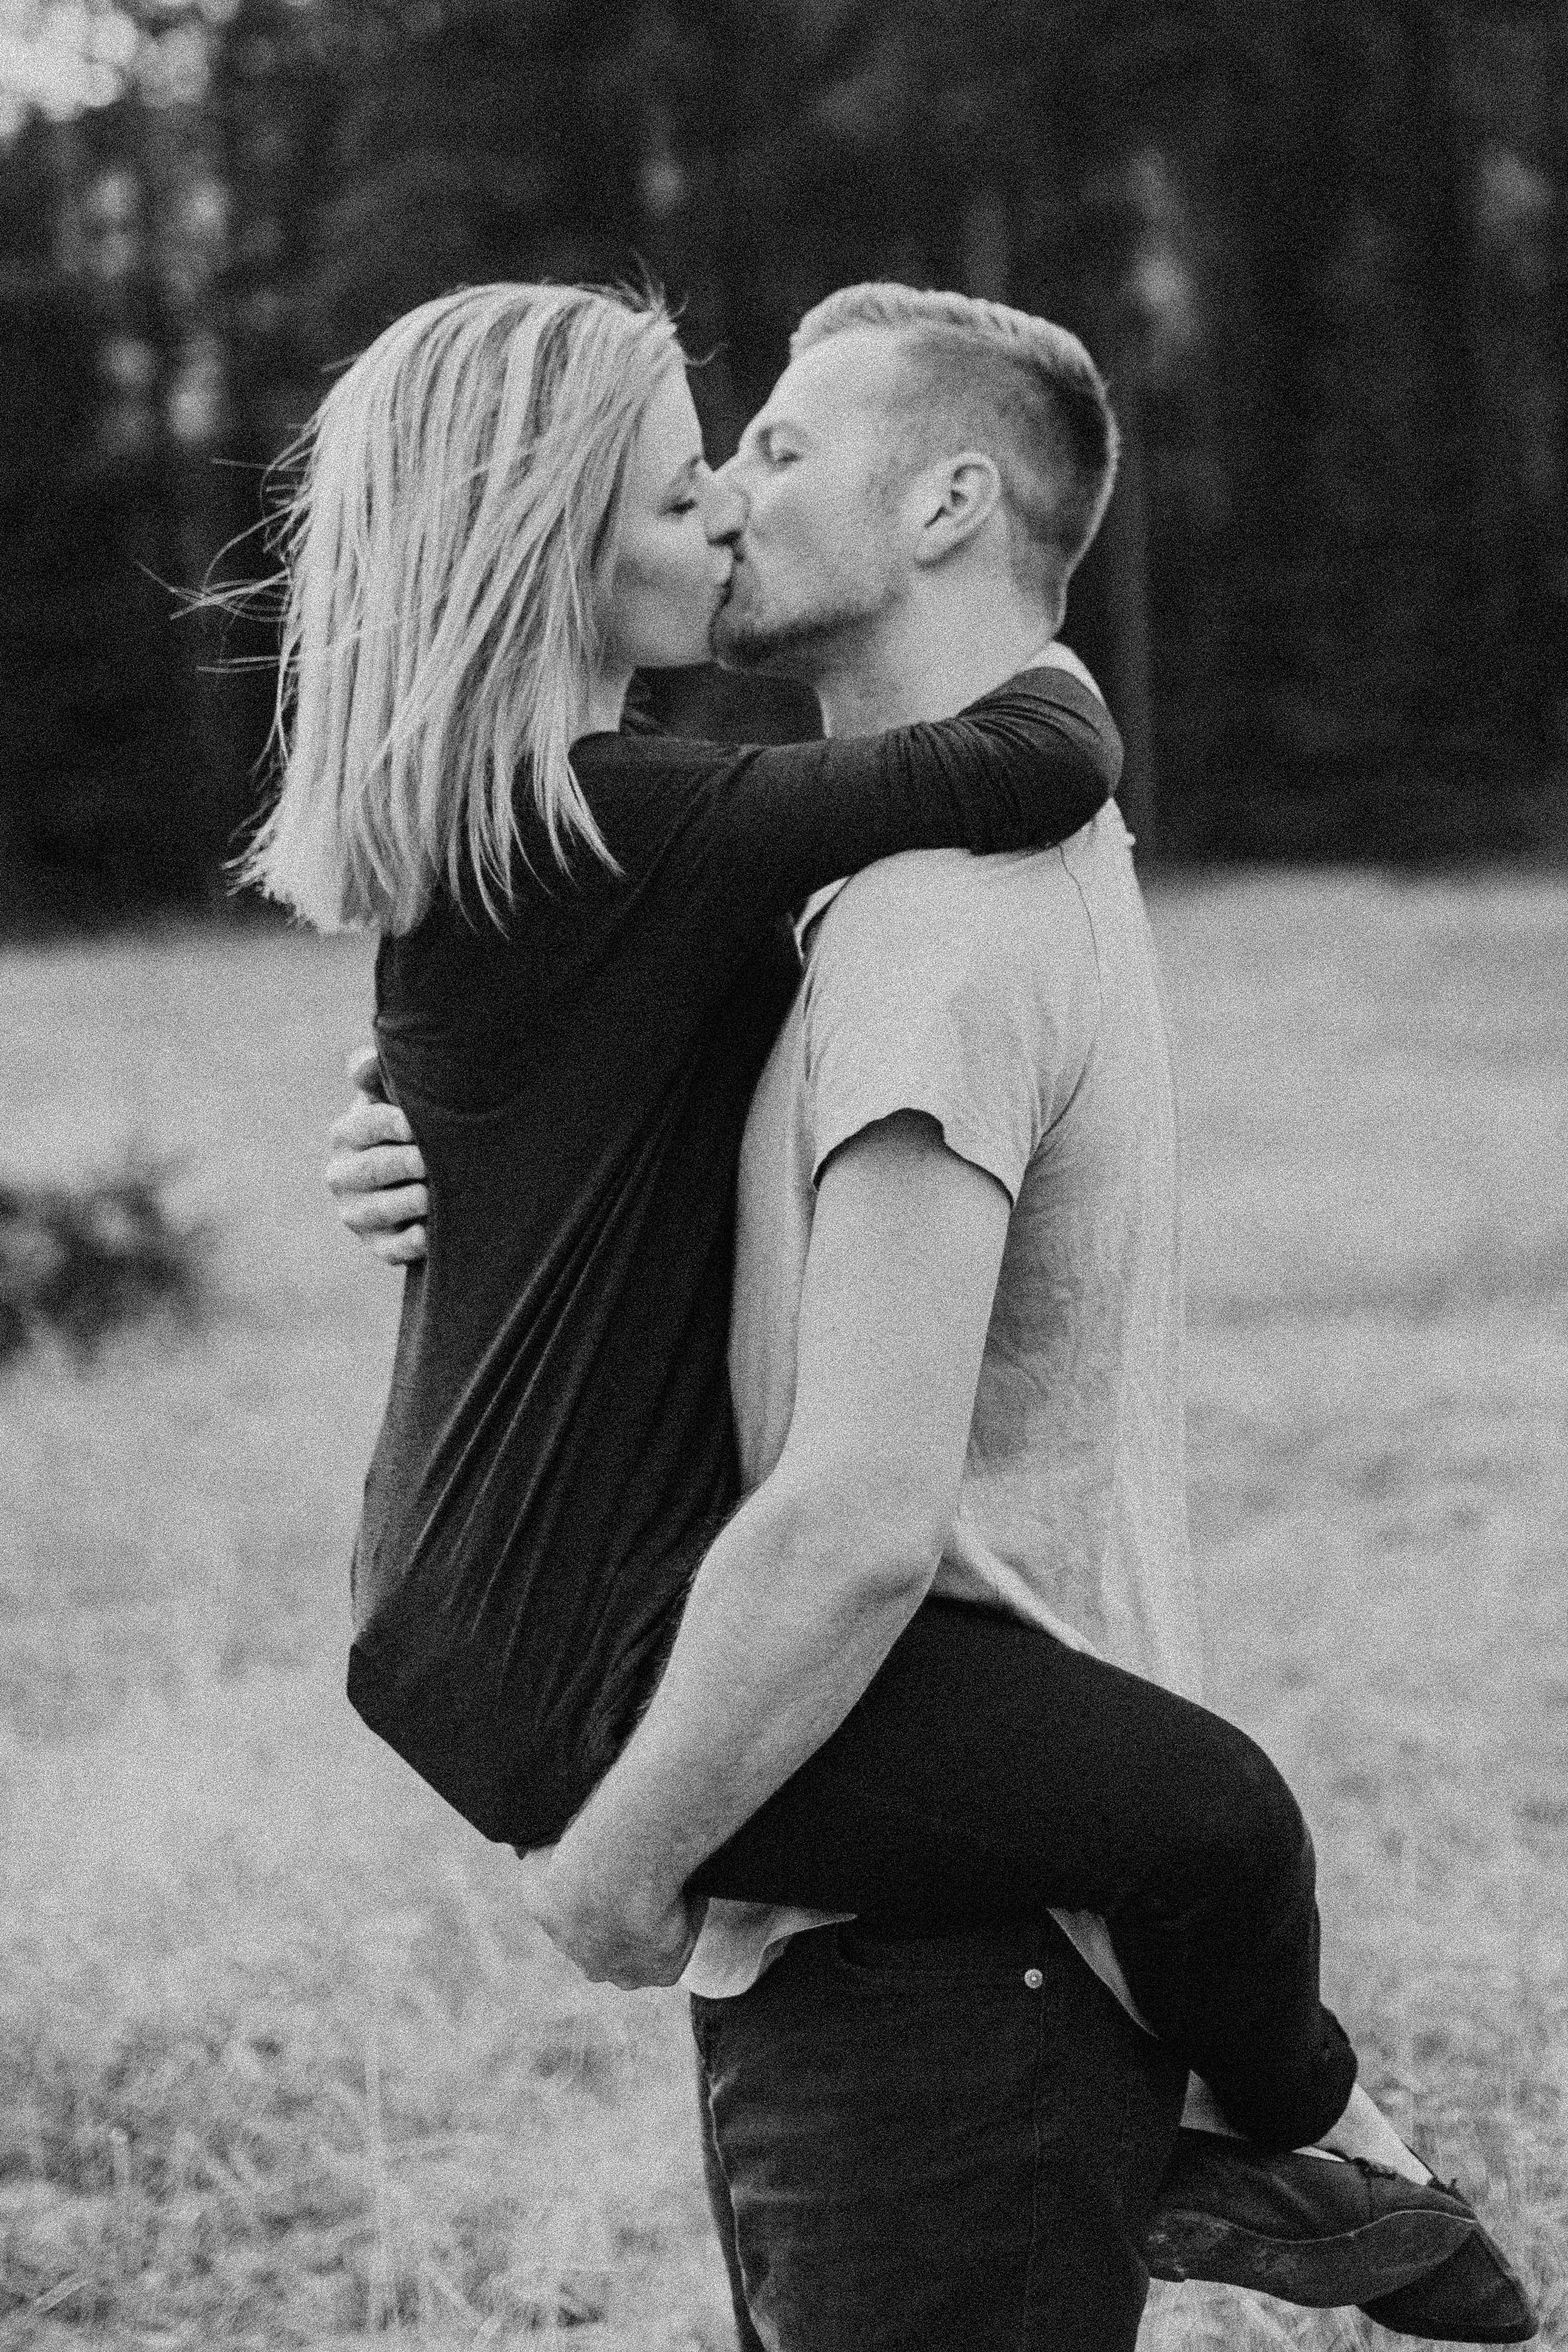 simpleperfectionsphotography.cullen+chelsey-8.jpg